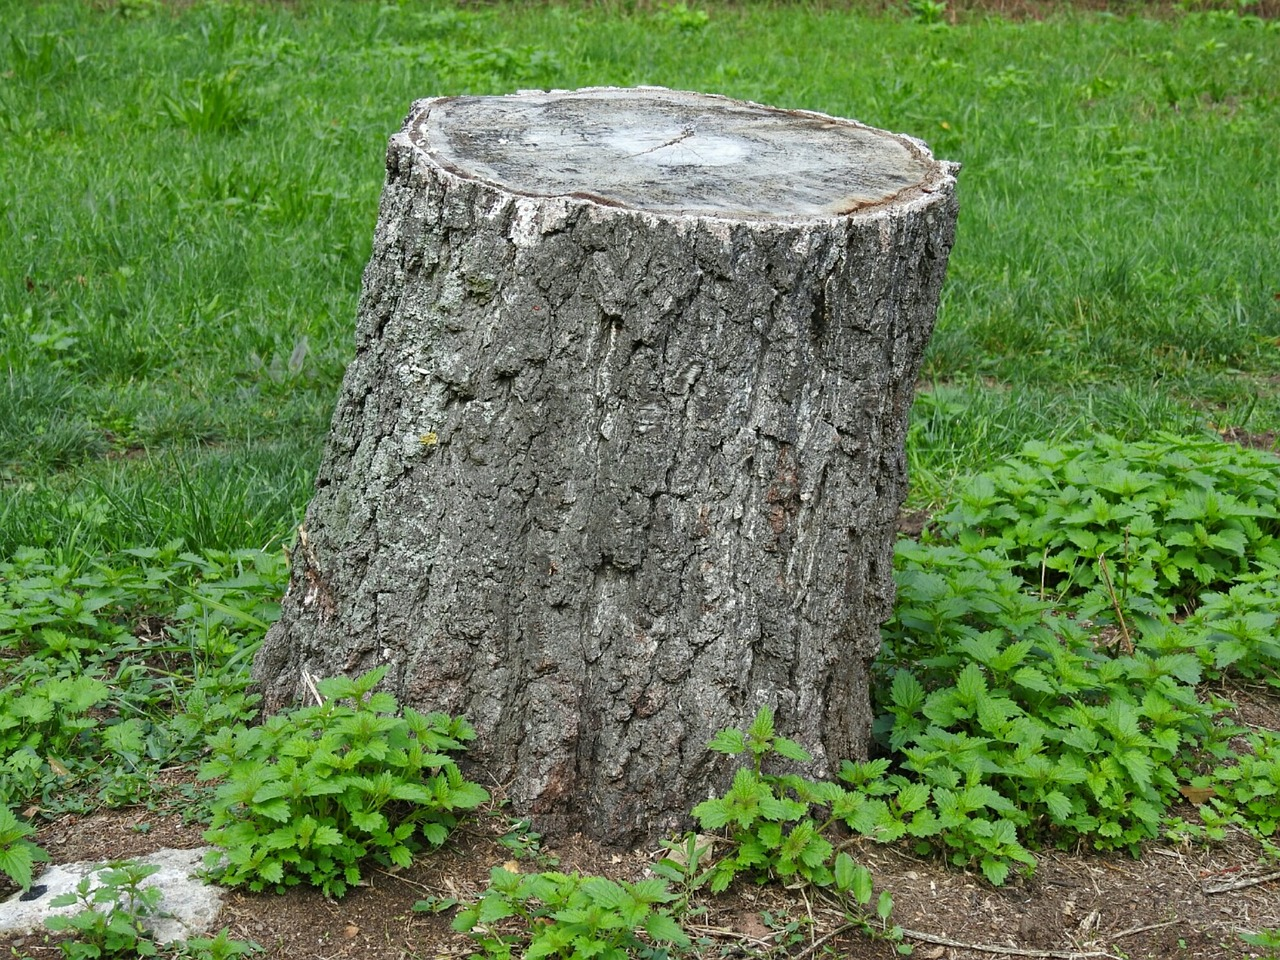 Image of a tree stump - Tree stump removal - let the digger do it - tree stump excavation - let the digger do it!